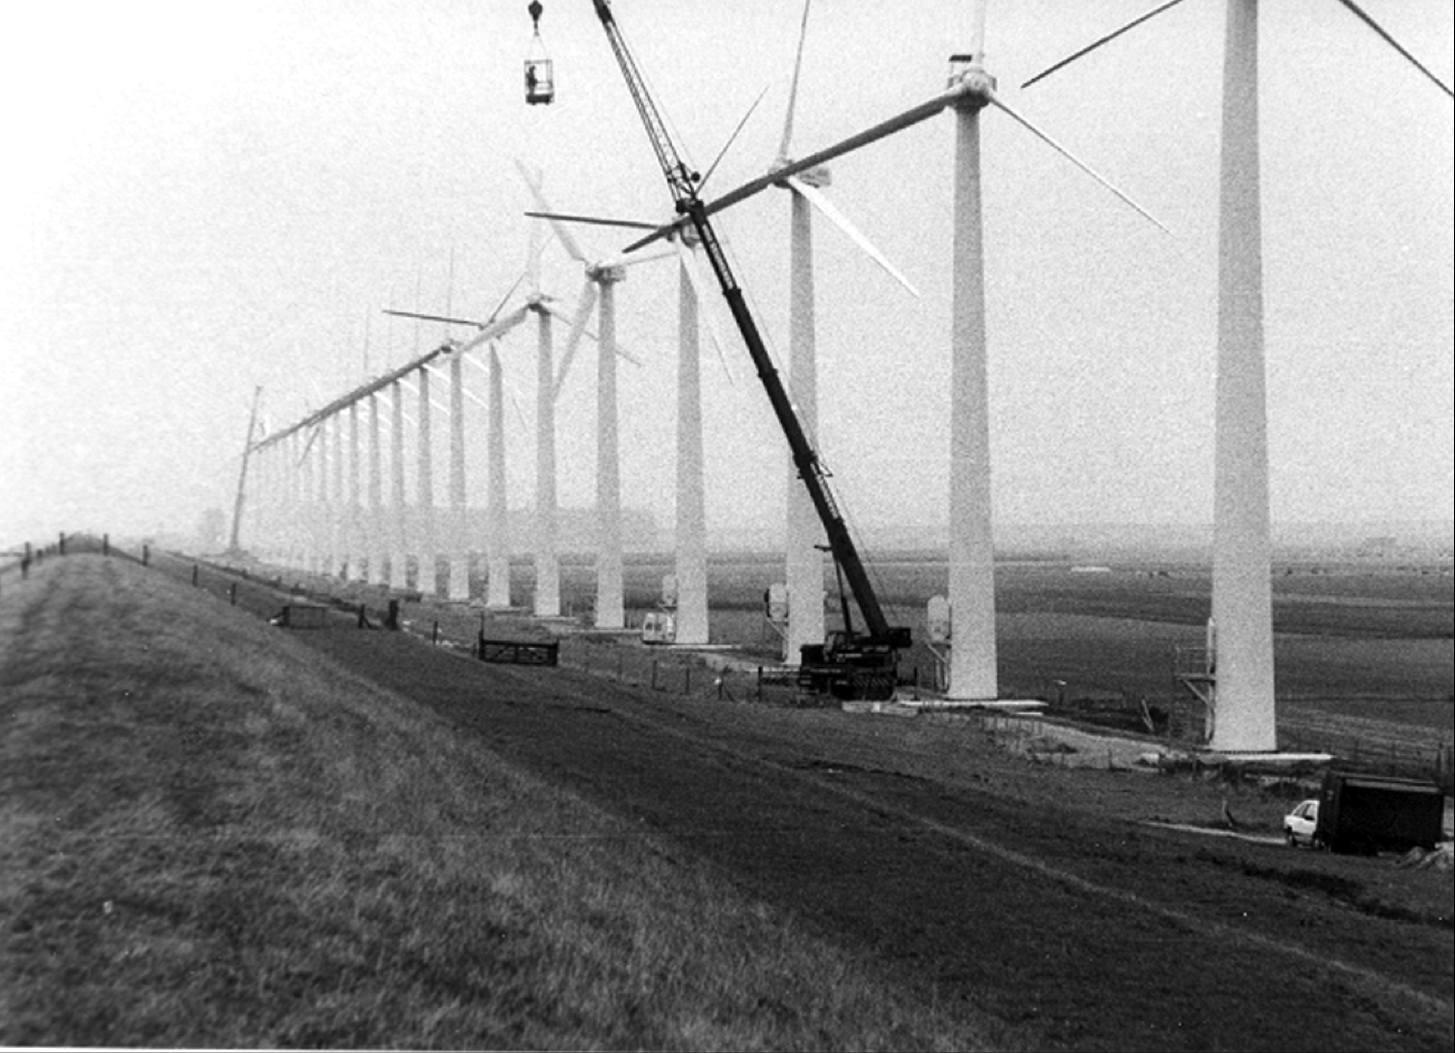 Expansion windmill park at the Westermeerdijk near Espel, 1991.